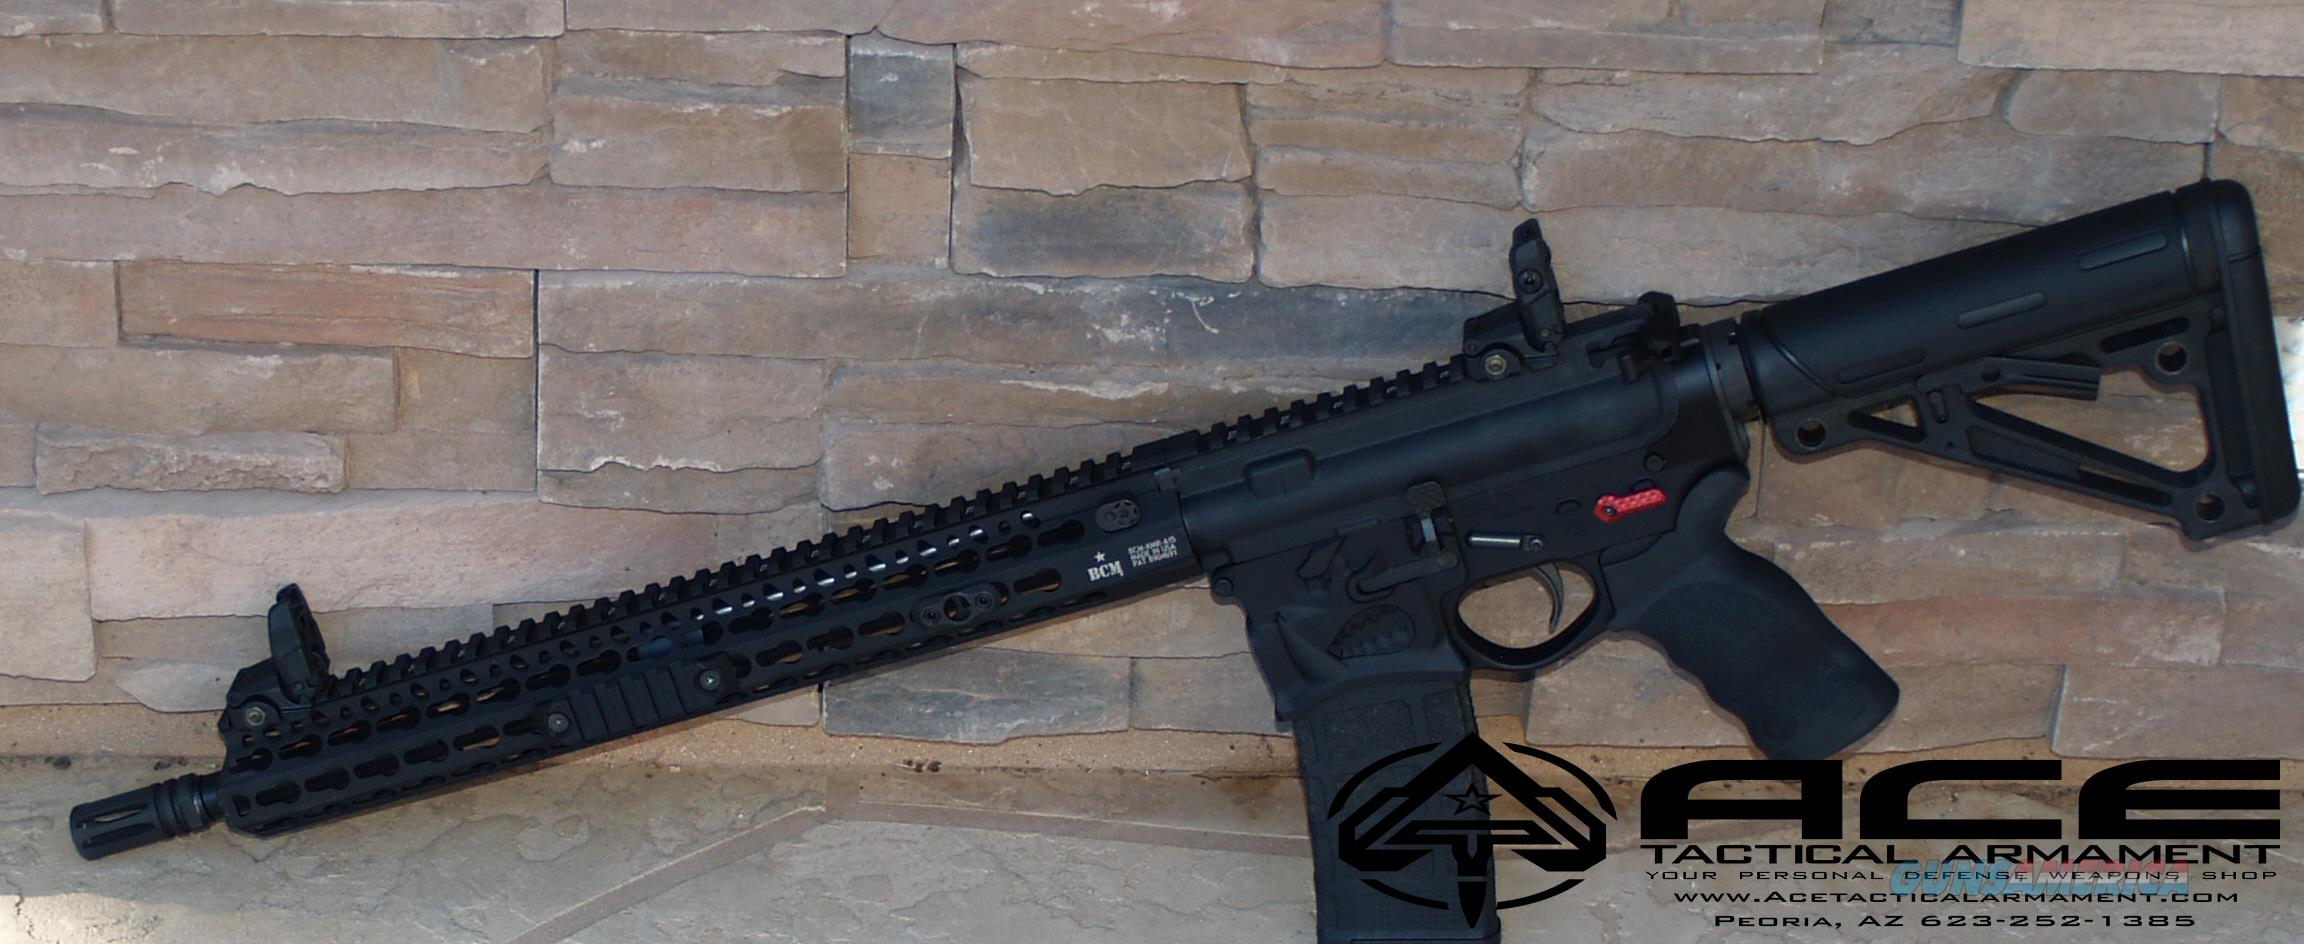 Spikes Tactical Warthog rifle   Guns > Rifles > AR-15 Rifles - Small Manufacturers > Complete Rifle